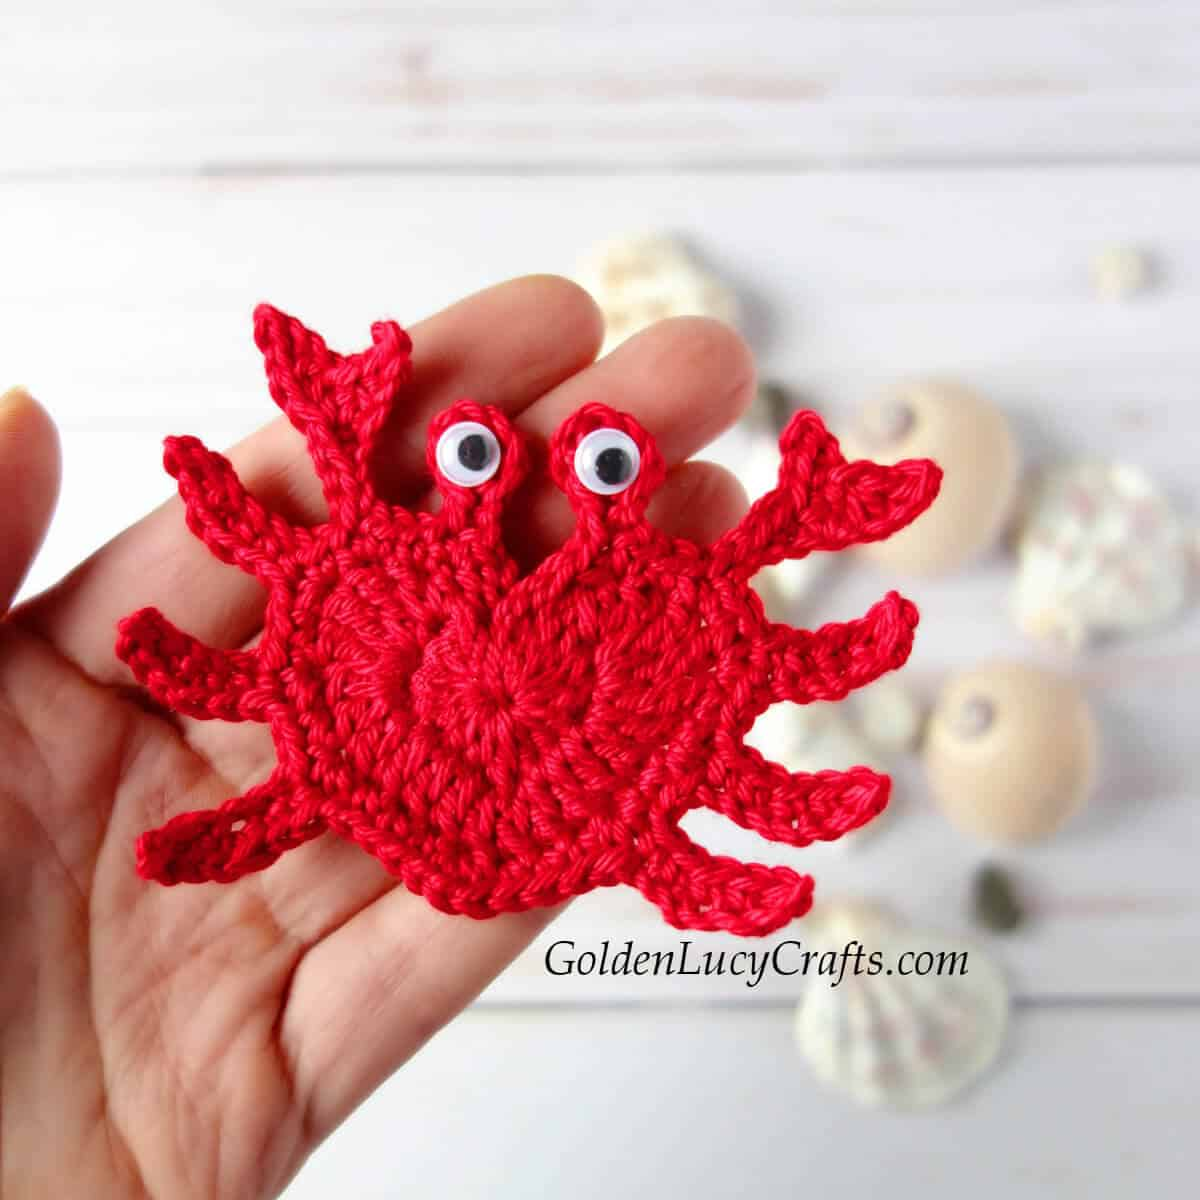 Crocheted red crab applique in the palm of a hand.